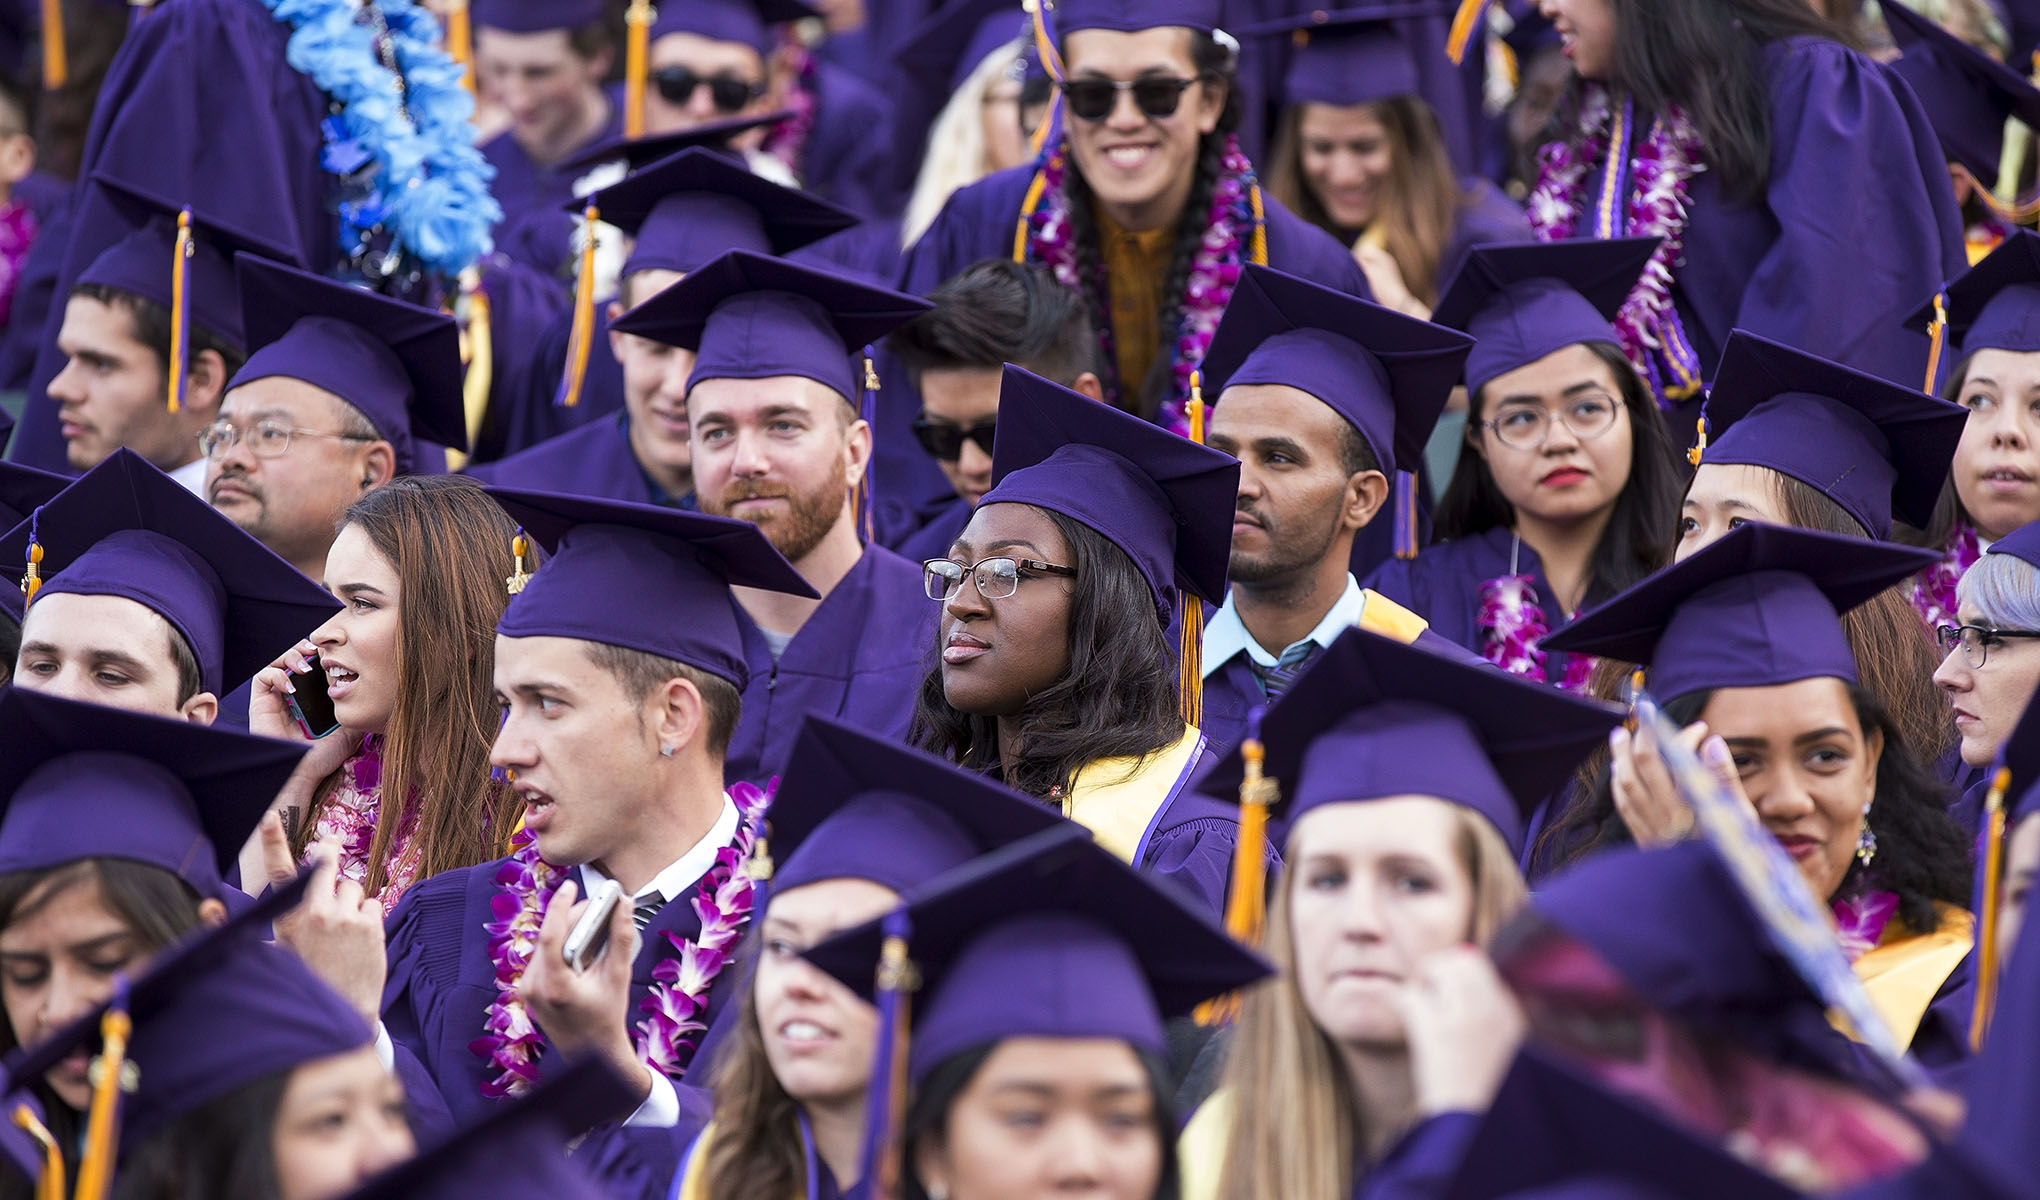 A photo of SF State graduates in purple caps and gowns at Commencement.